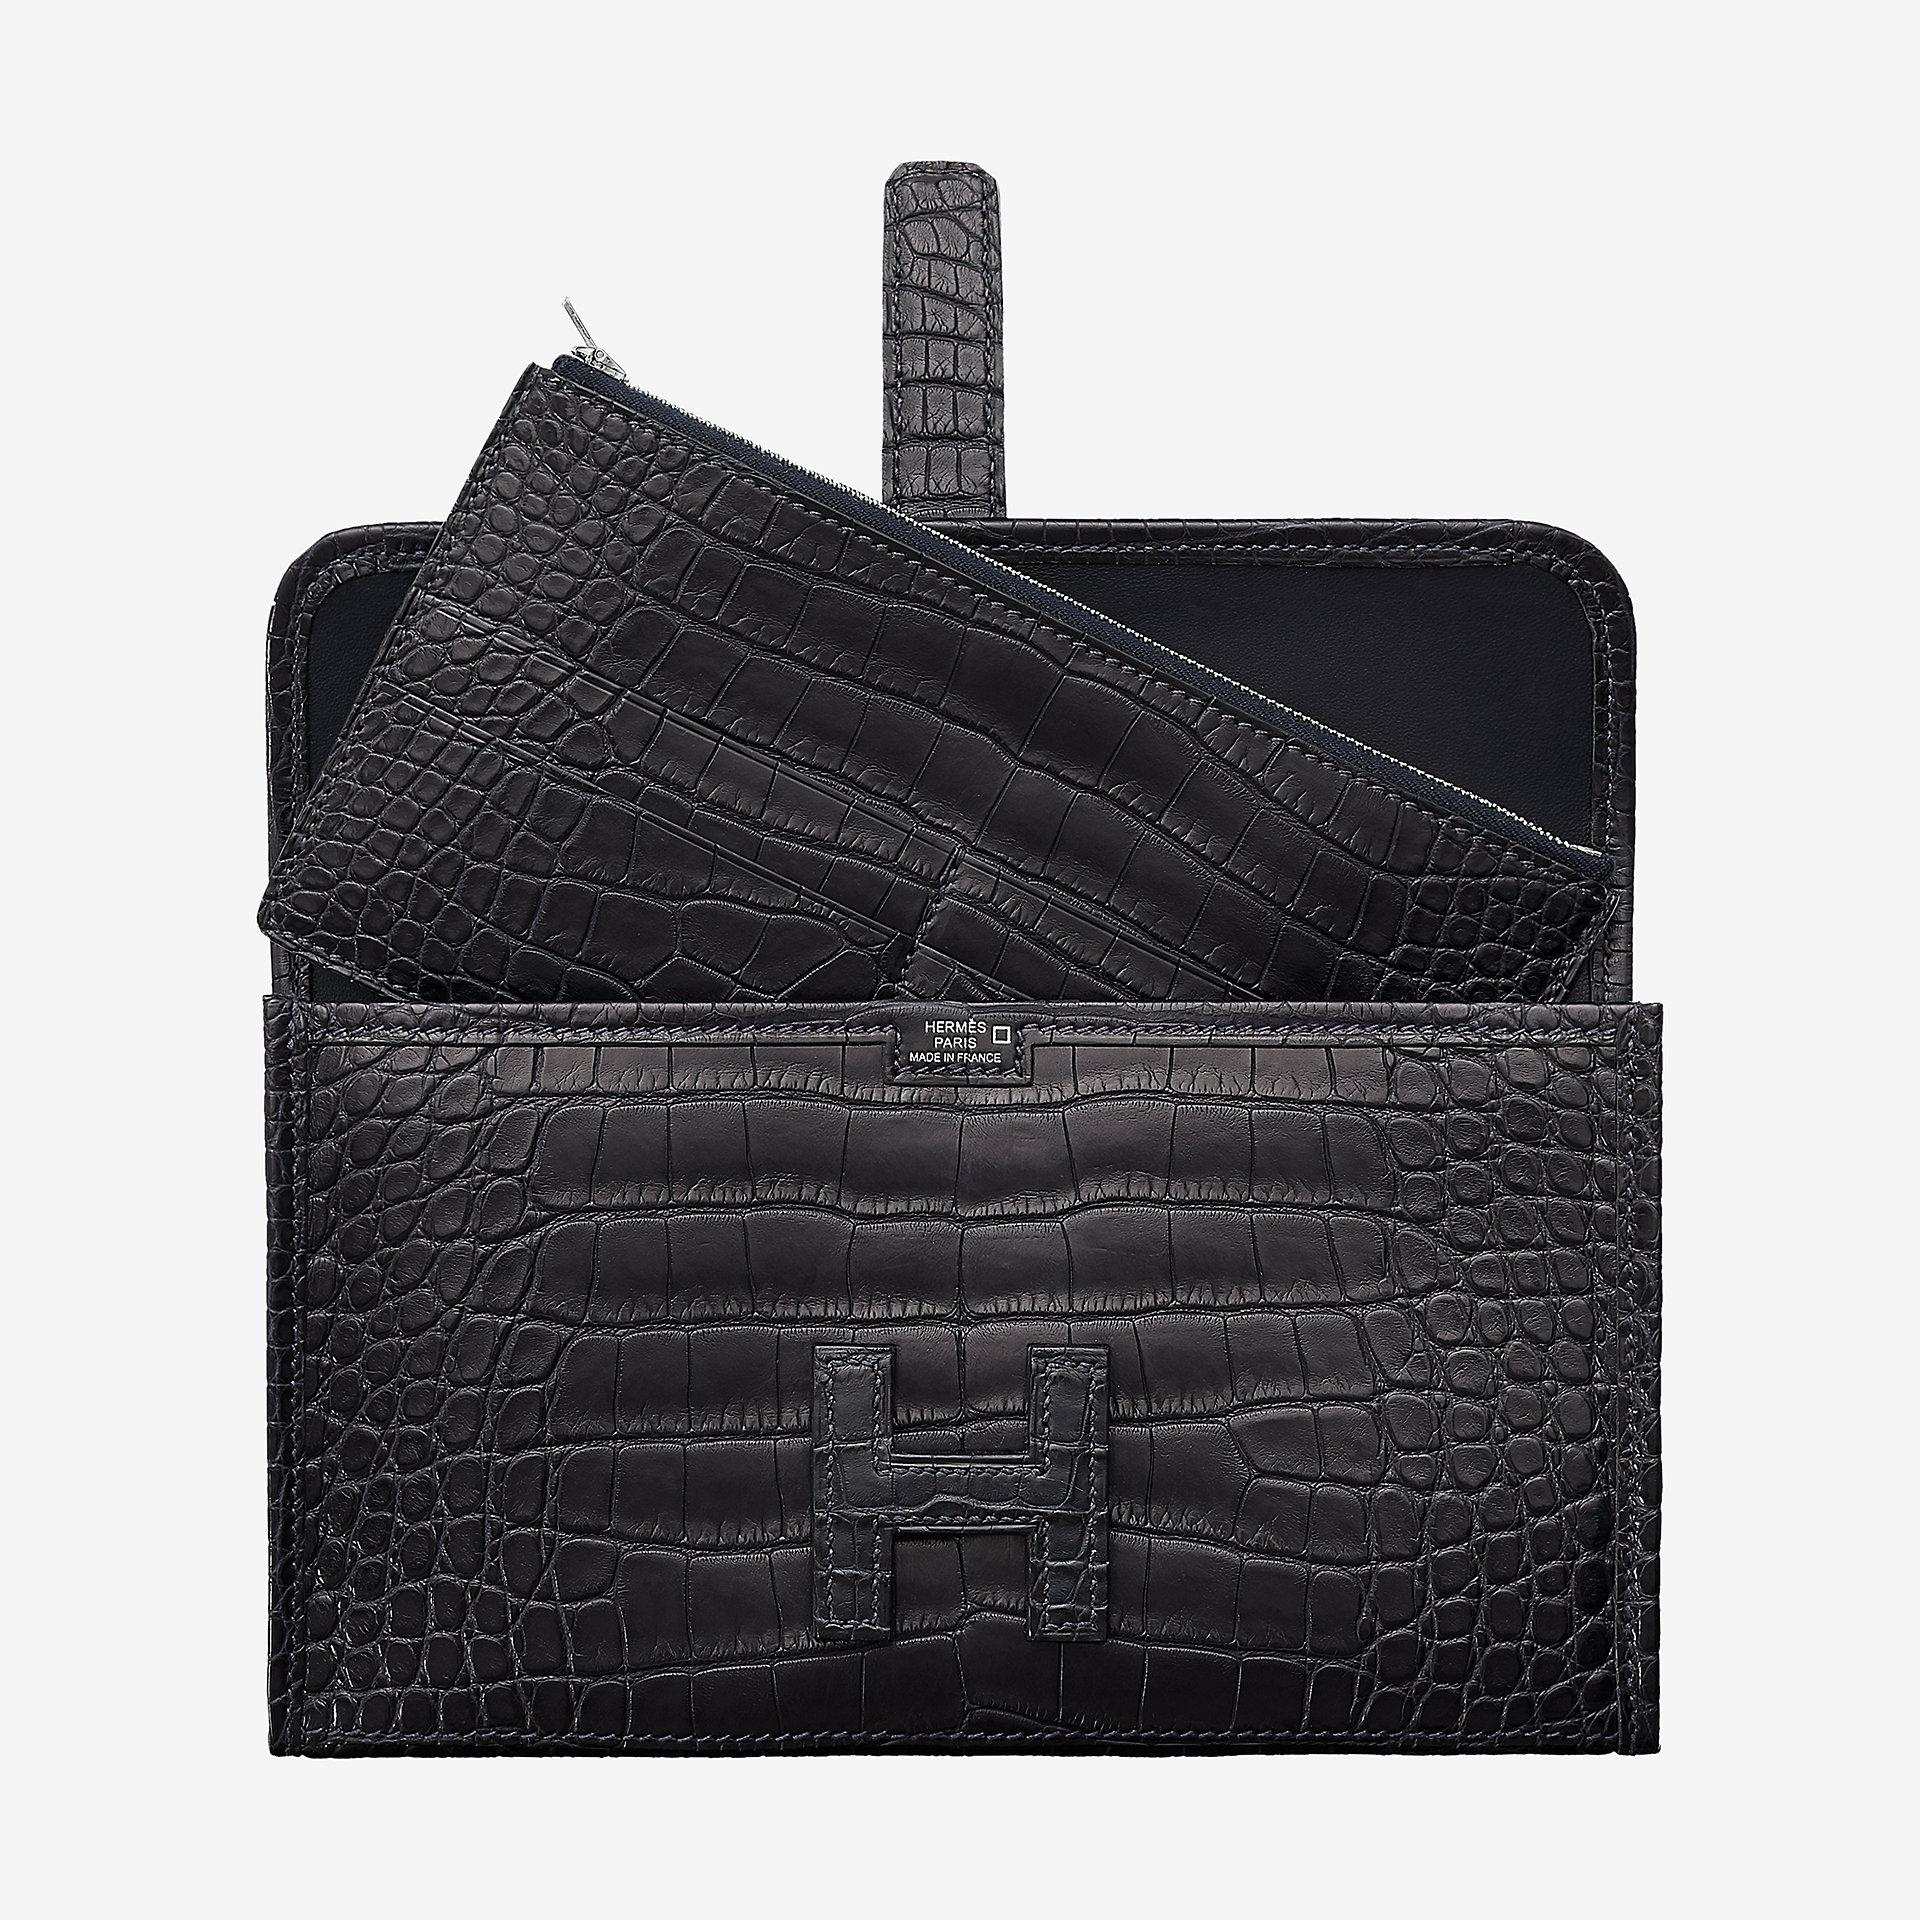 臺灣臺南市 Hermes Jige Duo wallet CA76 bleu indigo alligator